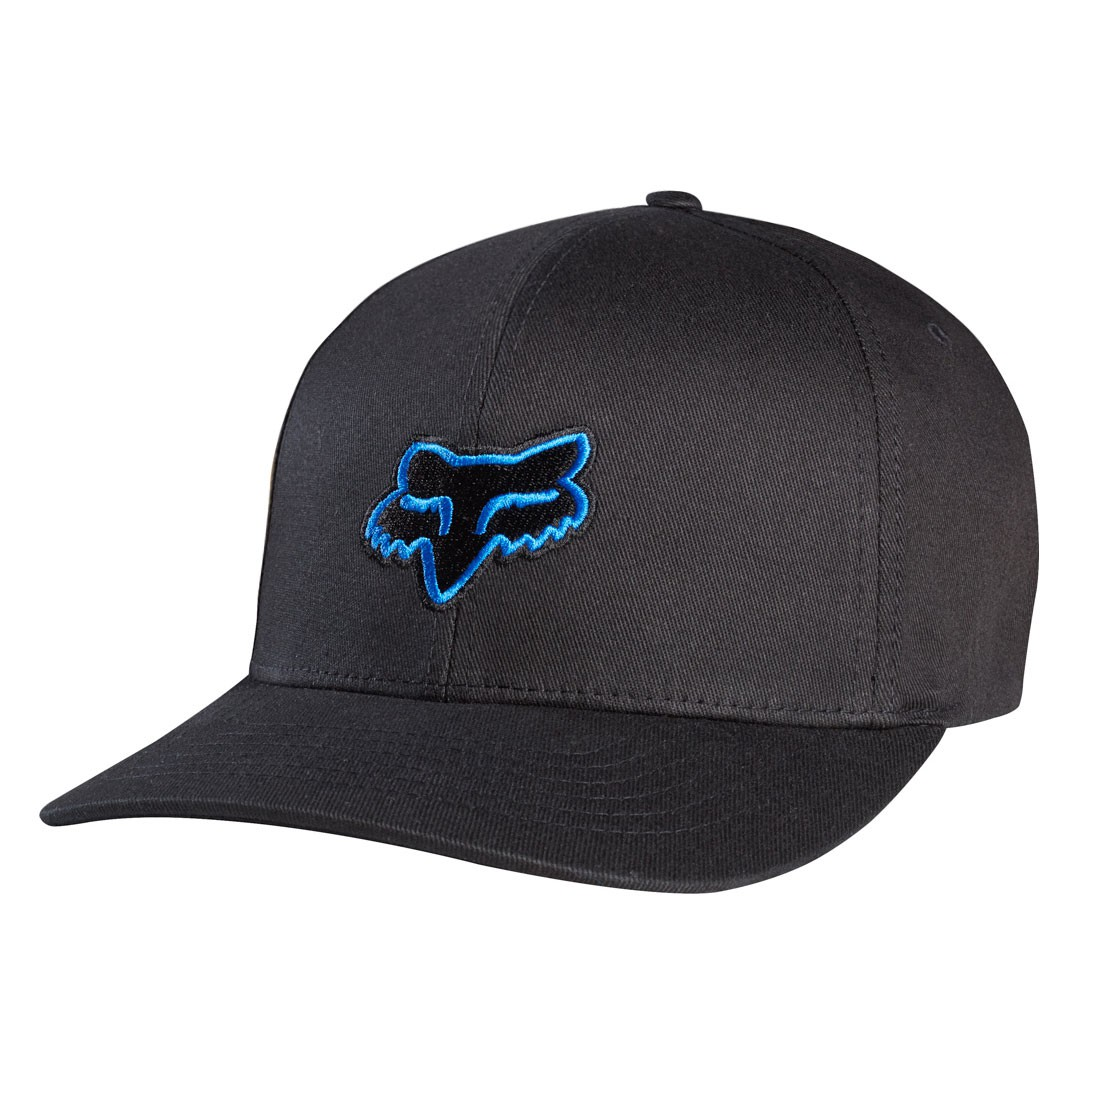 Kšiltovka Fox Legacy Flexfit black/blue